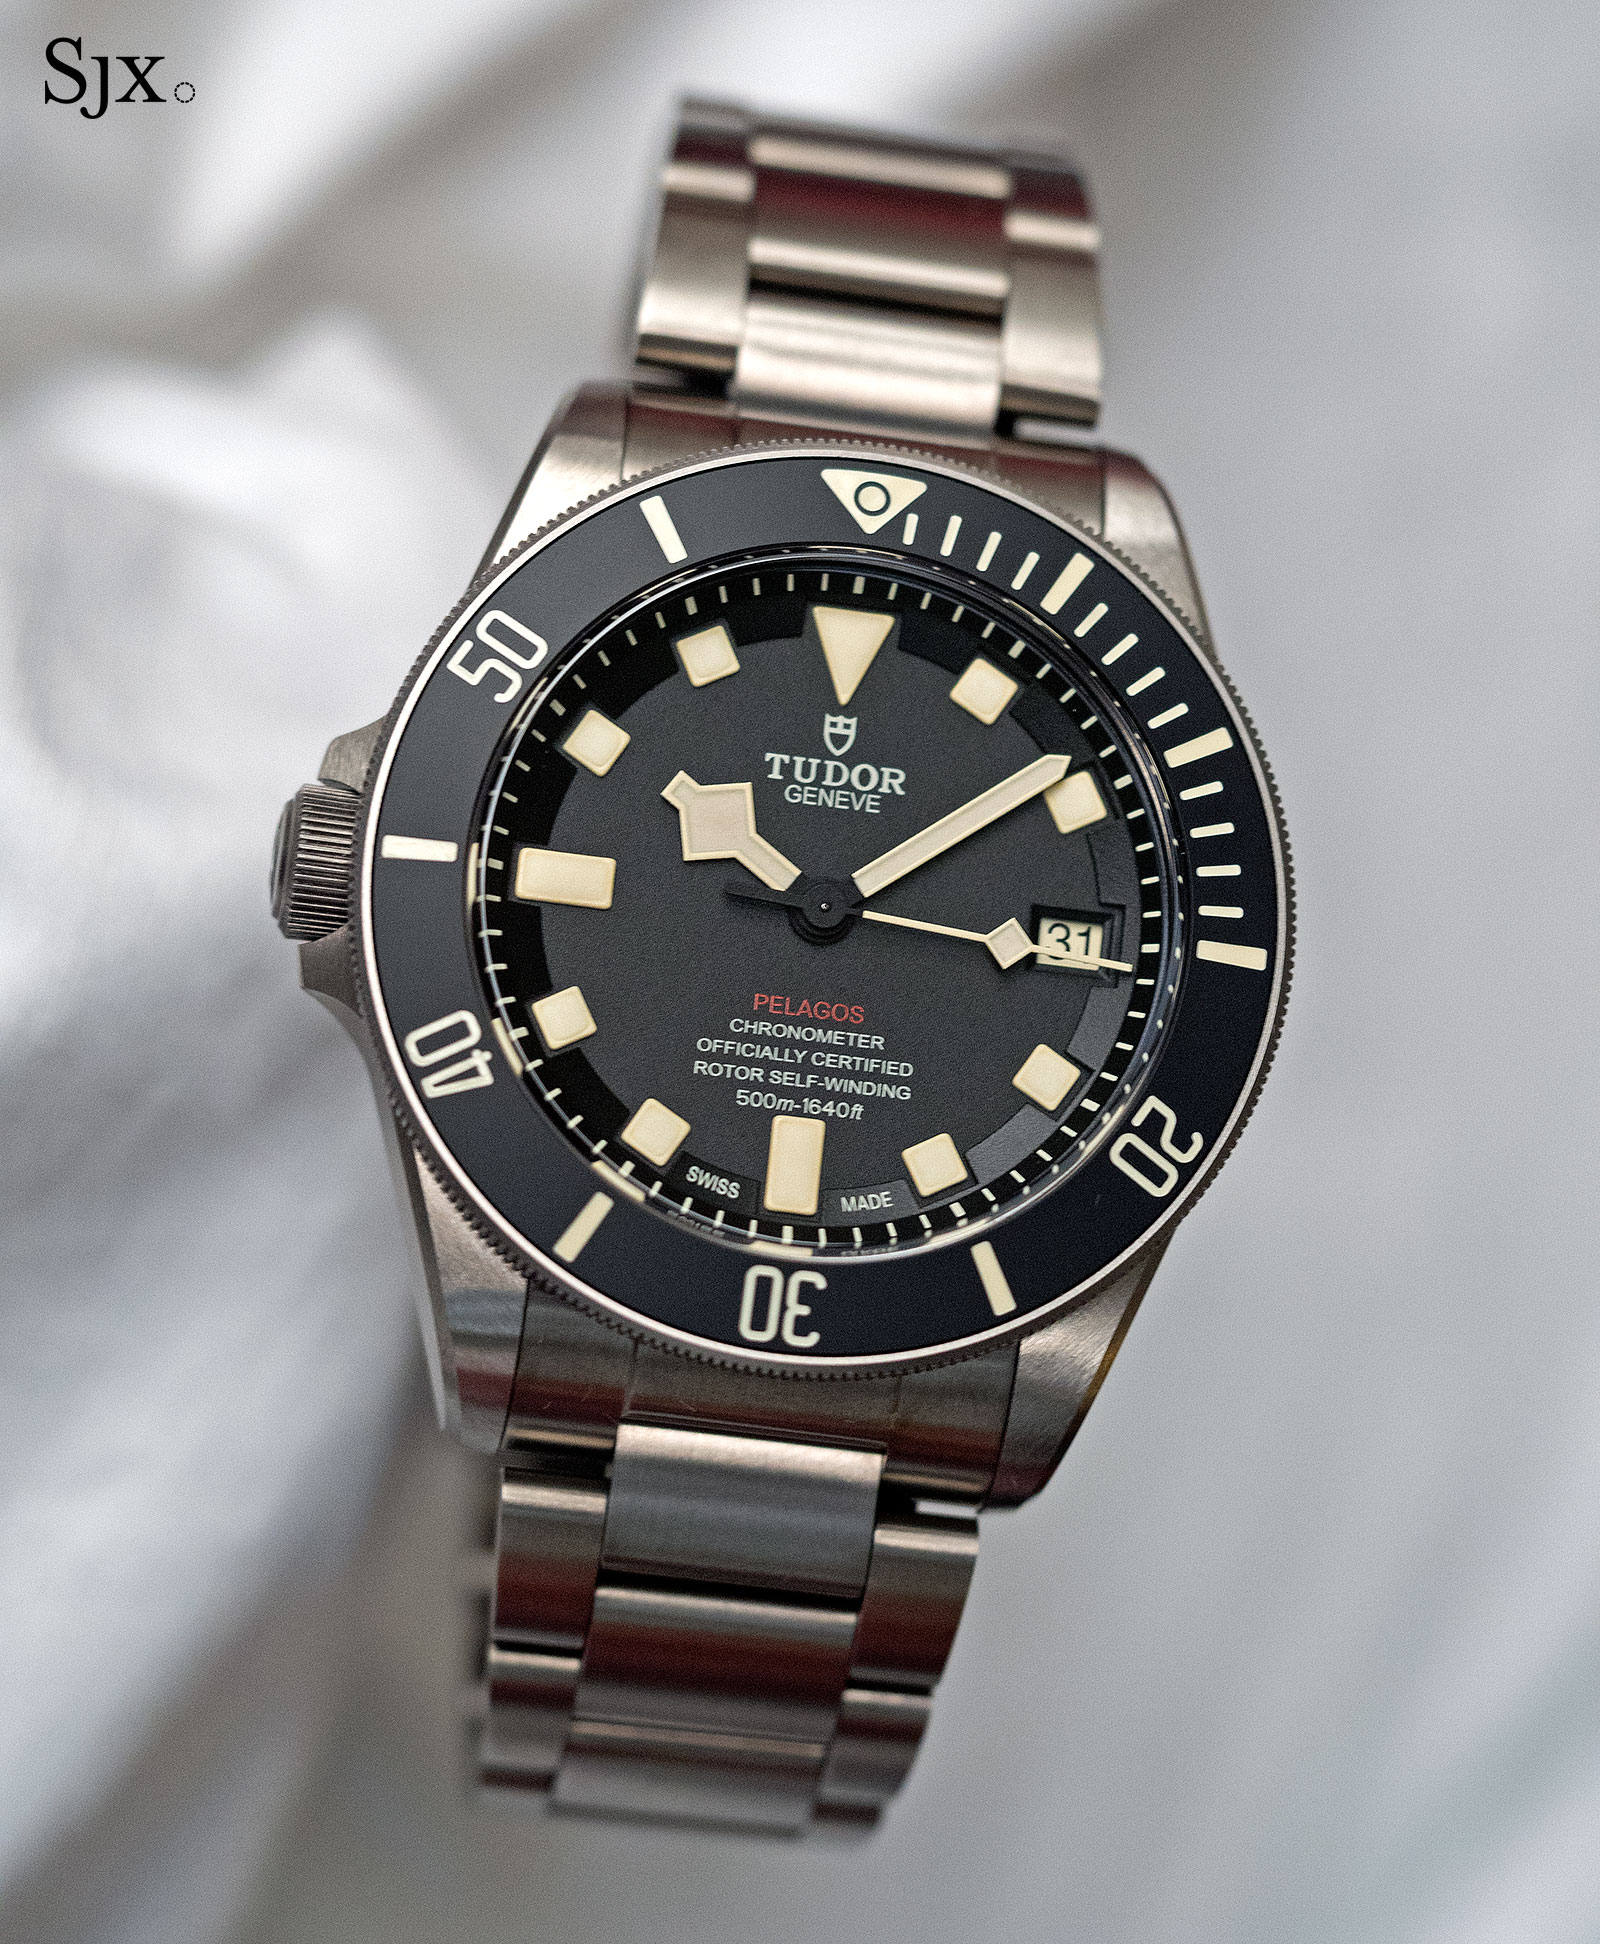 up close with the tudor pelagos lhd sjx watches. Black Bedroom Furniture Sets. Home Design Ideas